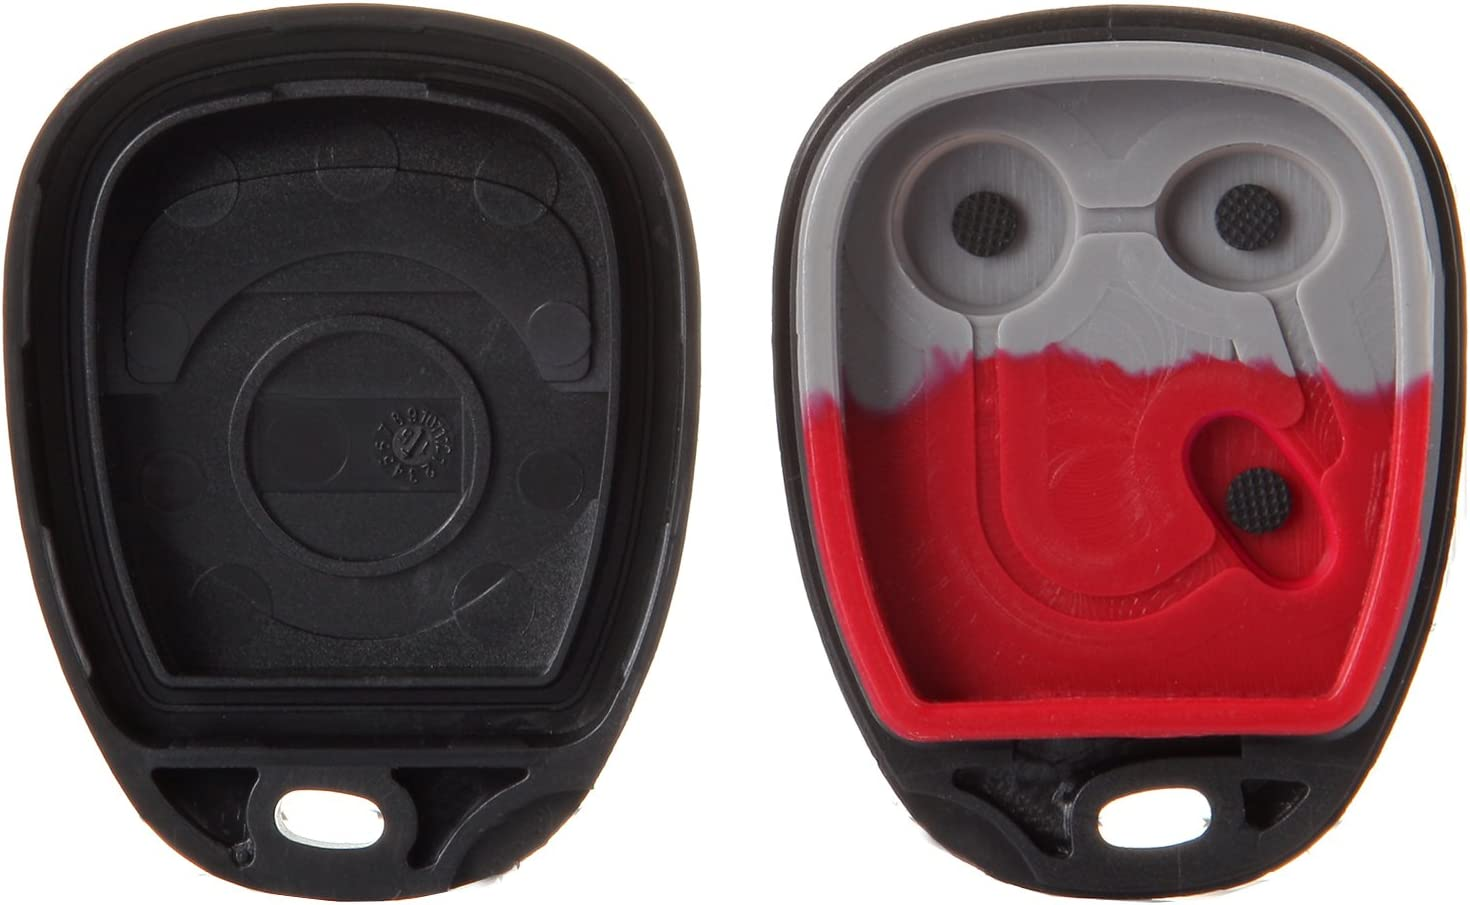 Saturn Vue LHJ011 Pontiac Torrent Hummer H2 Chevrolet Series Cadillac Escalade cciyu 1PC 3 Buttons Keyless Entry Remote Fob Case Replacement fit for Buick Rainier